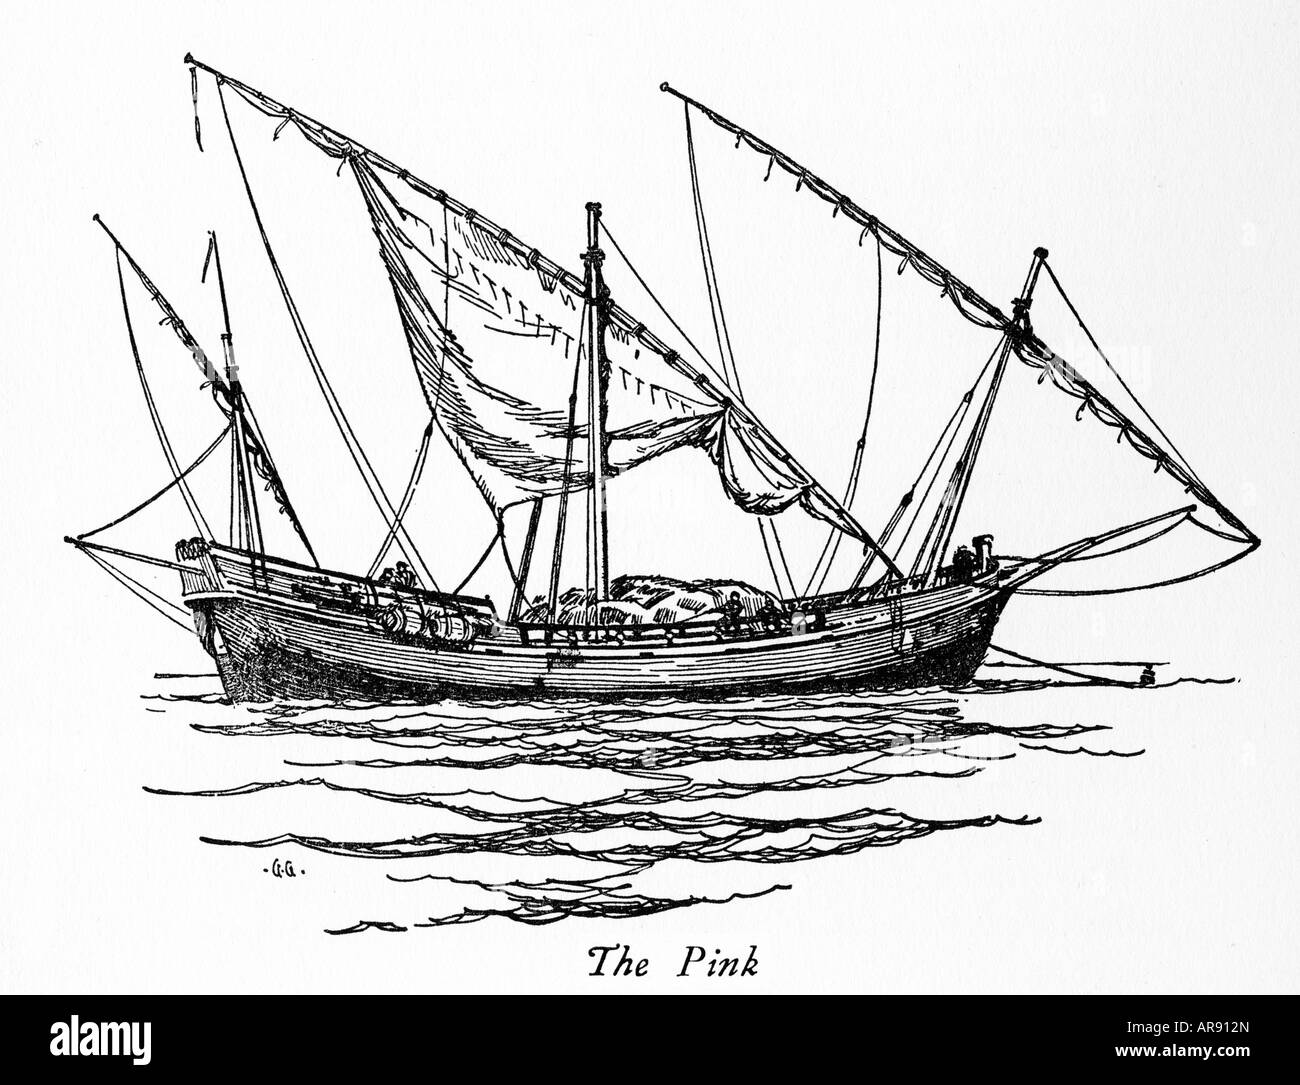 pink merchantman drawing of the mediterranean sailing vessel from